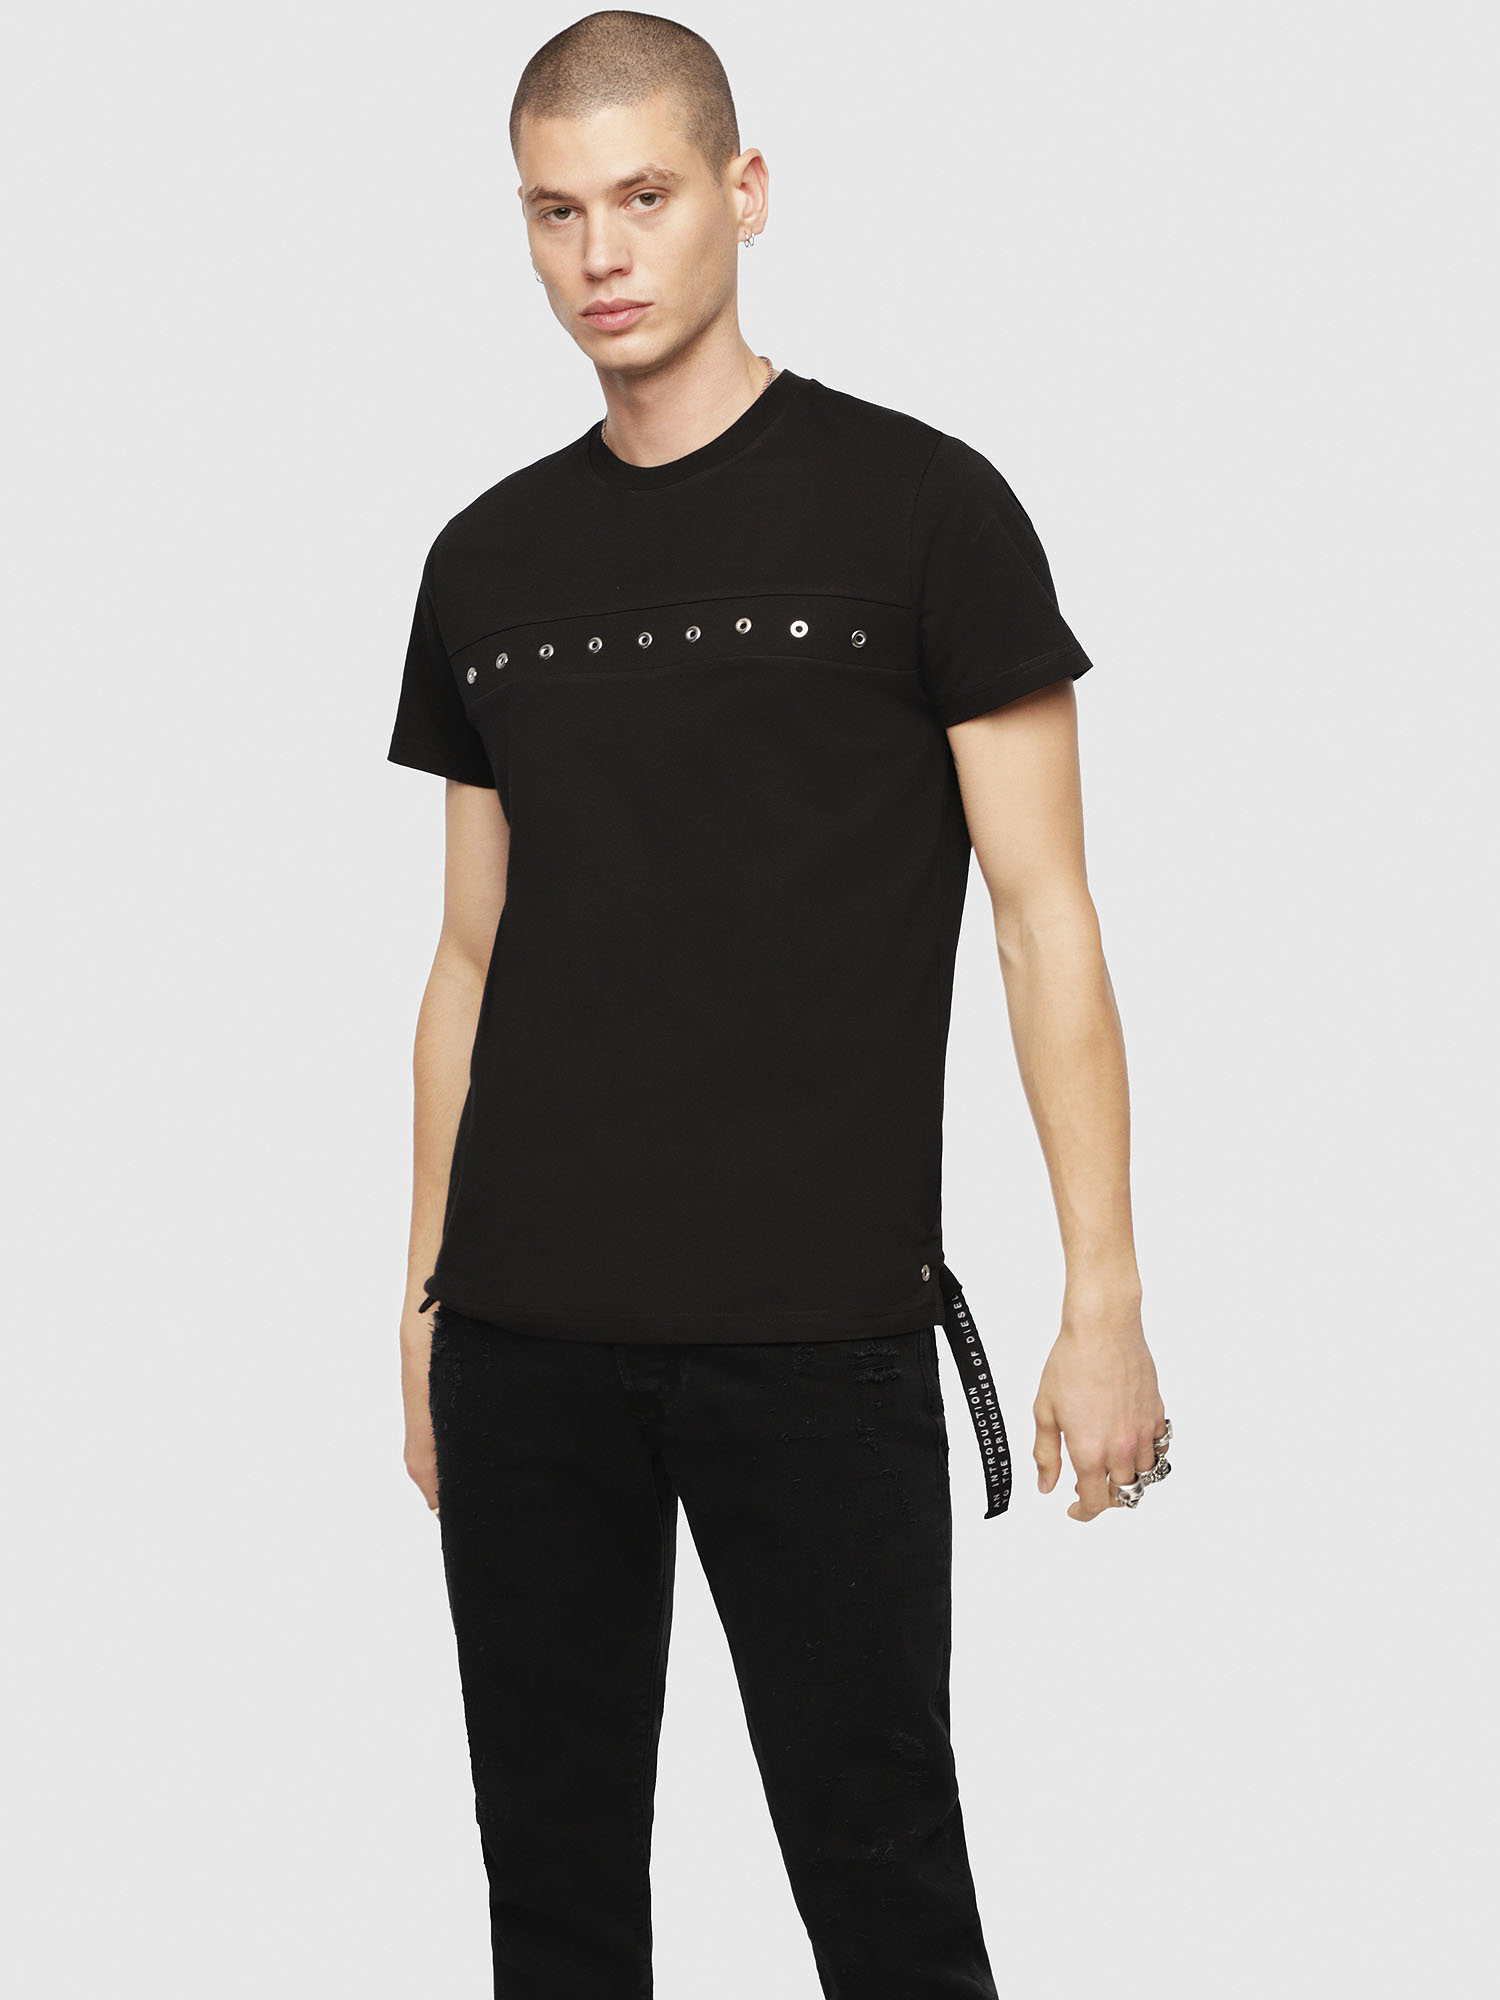 Diesel - T-DIEGO-XMAS,  - T-Shirts - Image 1